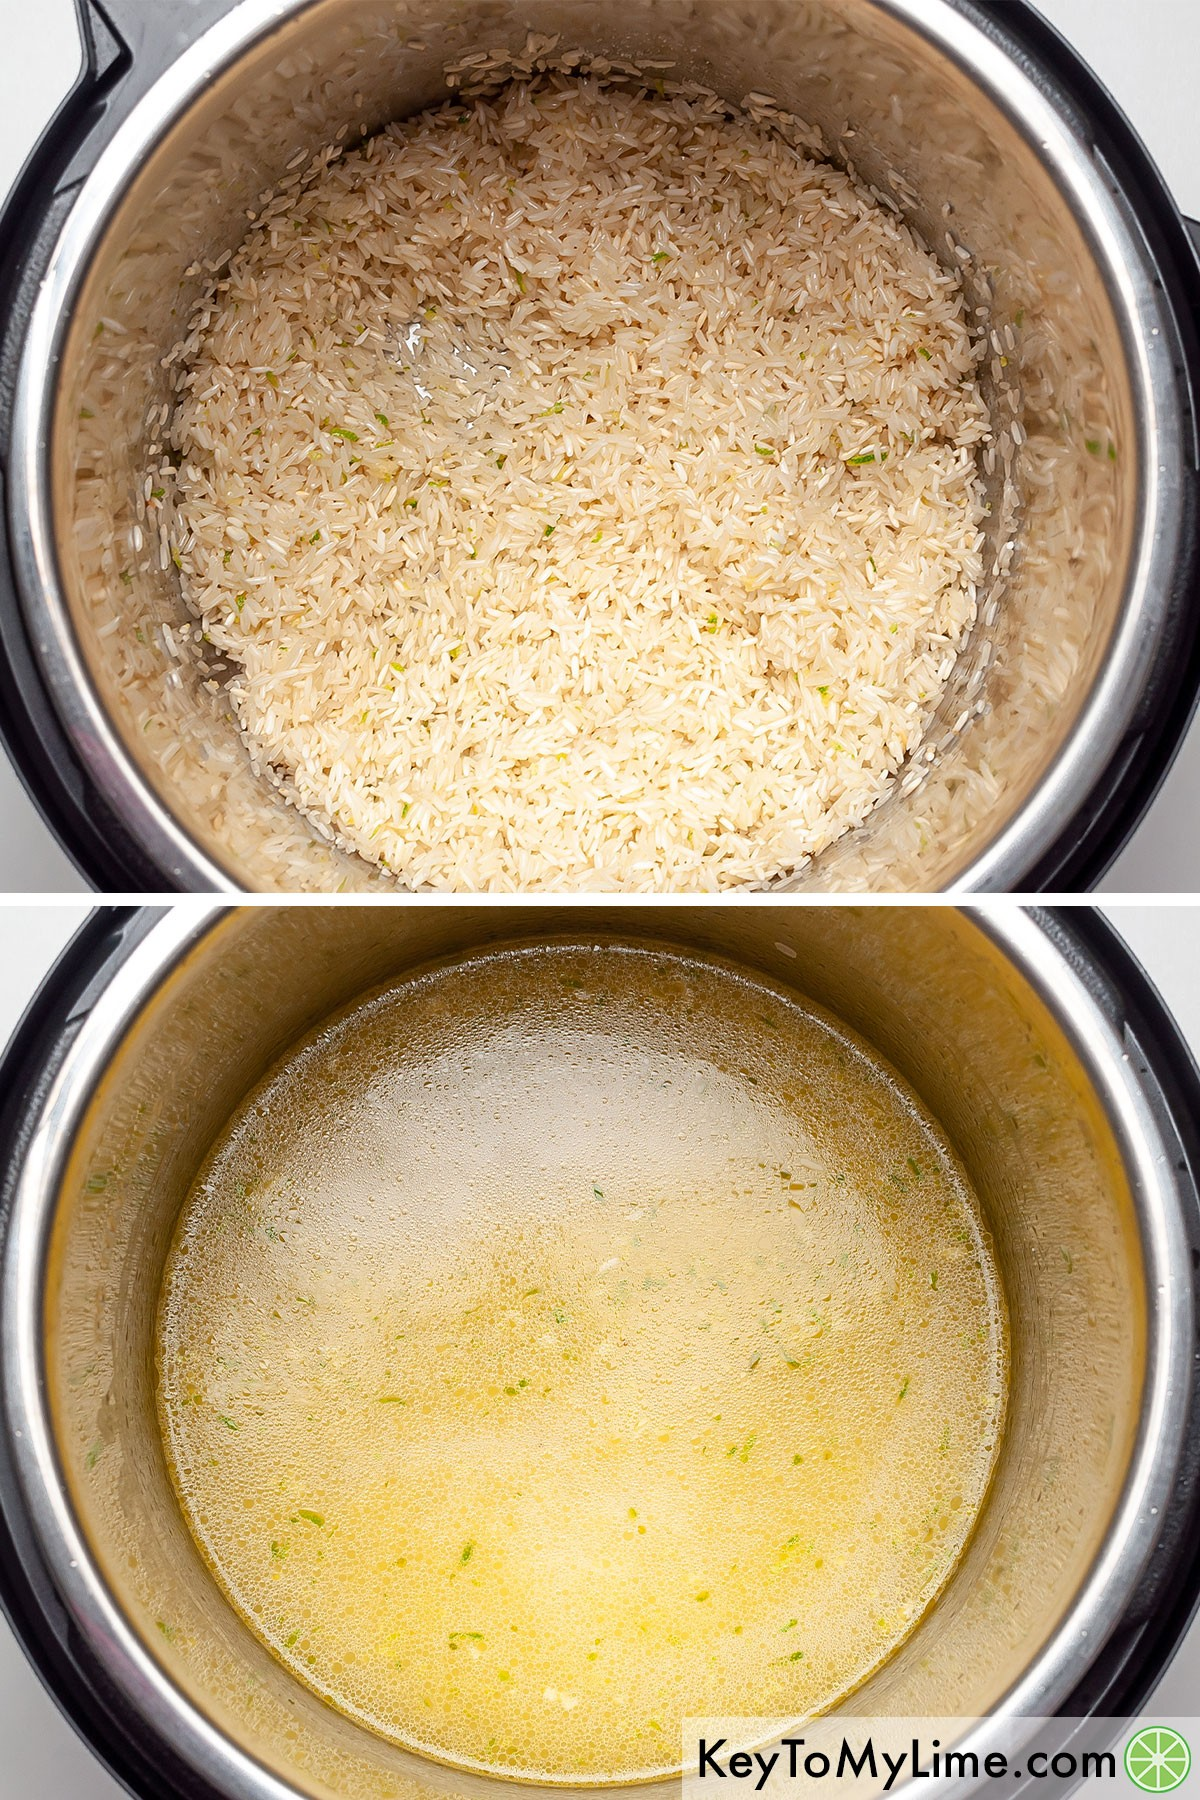 A process collage showing toasting the rice in oil, then adding the liquid to the Instant Pot.